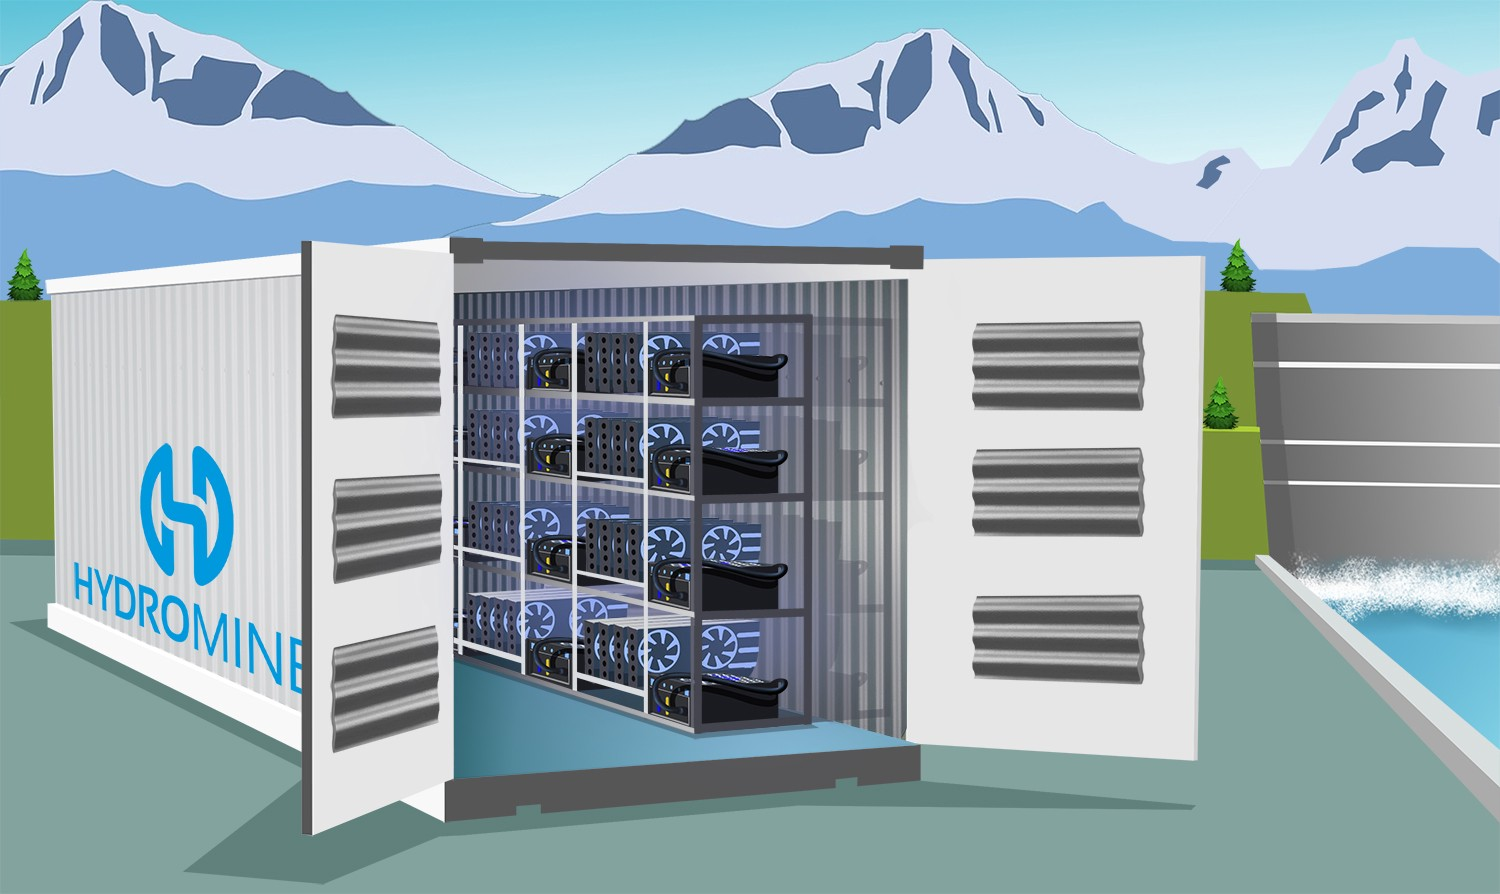 HydroMiner - The First Eco-Friendly Mining Business